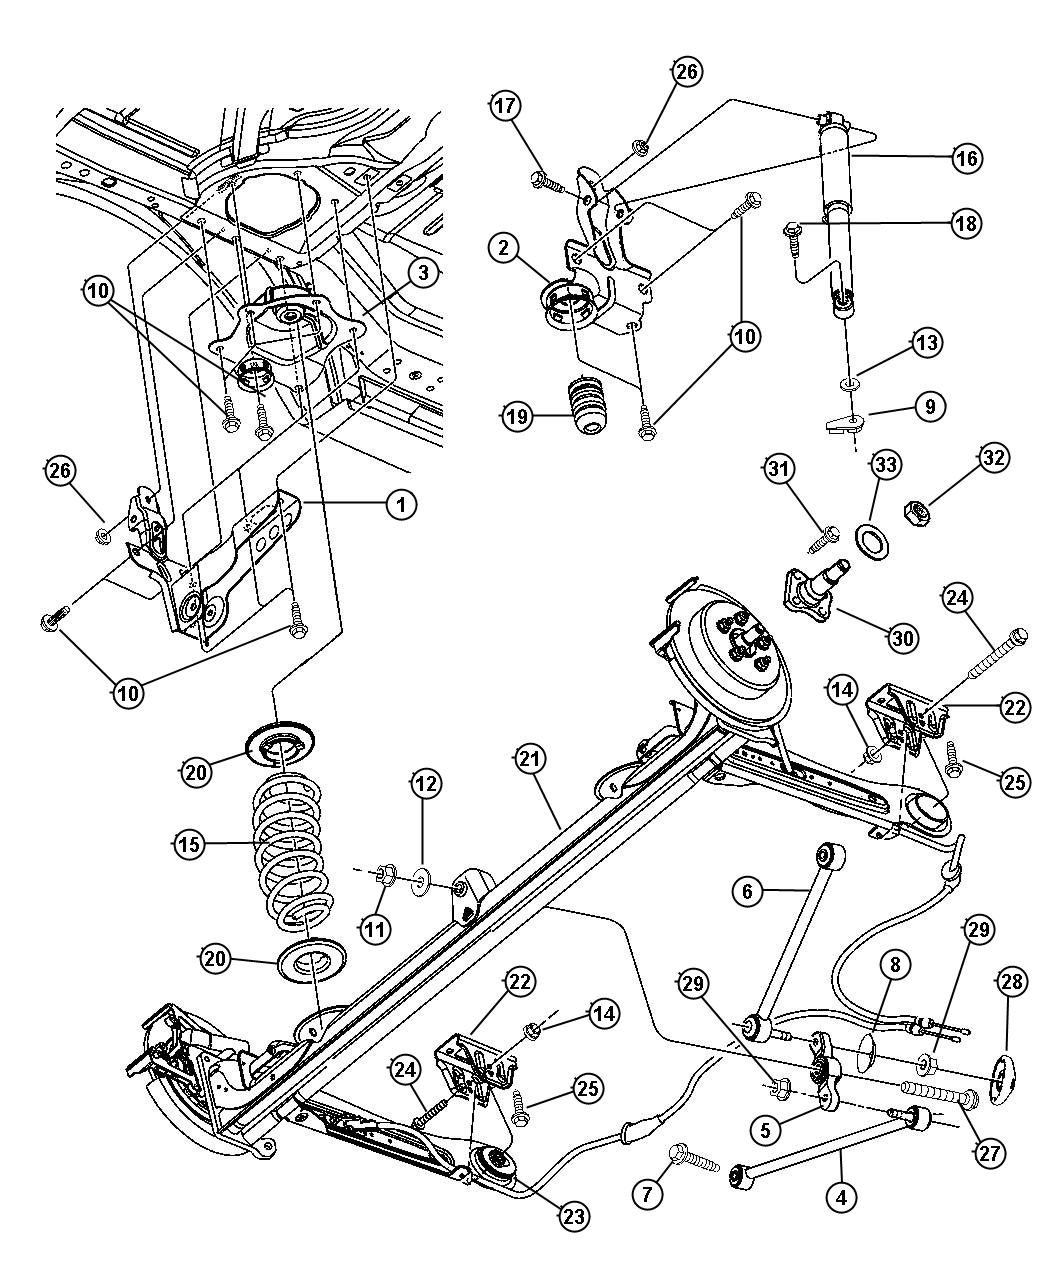 2001 Pt Cruiser Parts Diagram Real Wiring Toyota Engine P062dno1 2002 Imageresizertool Com Catalog